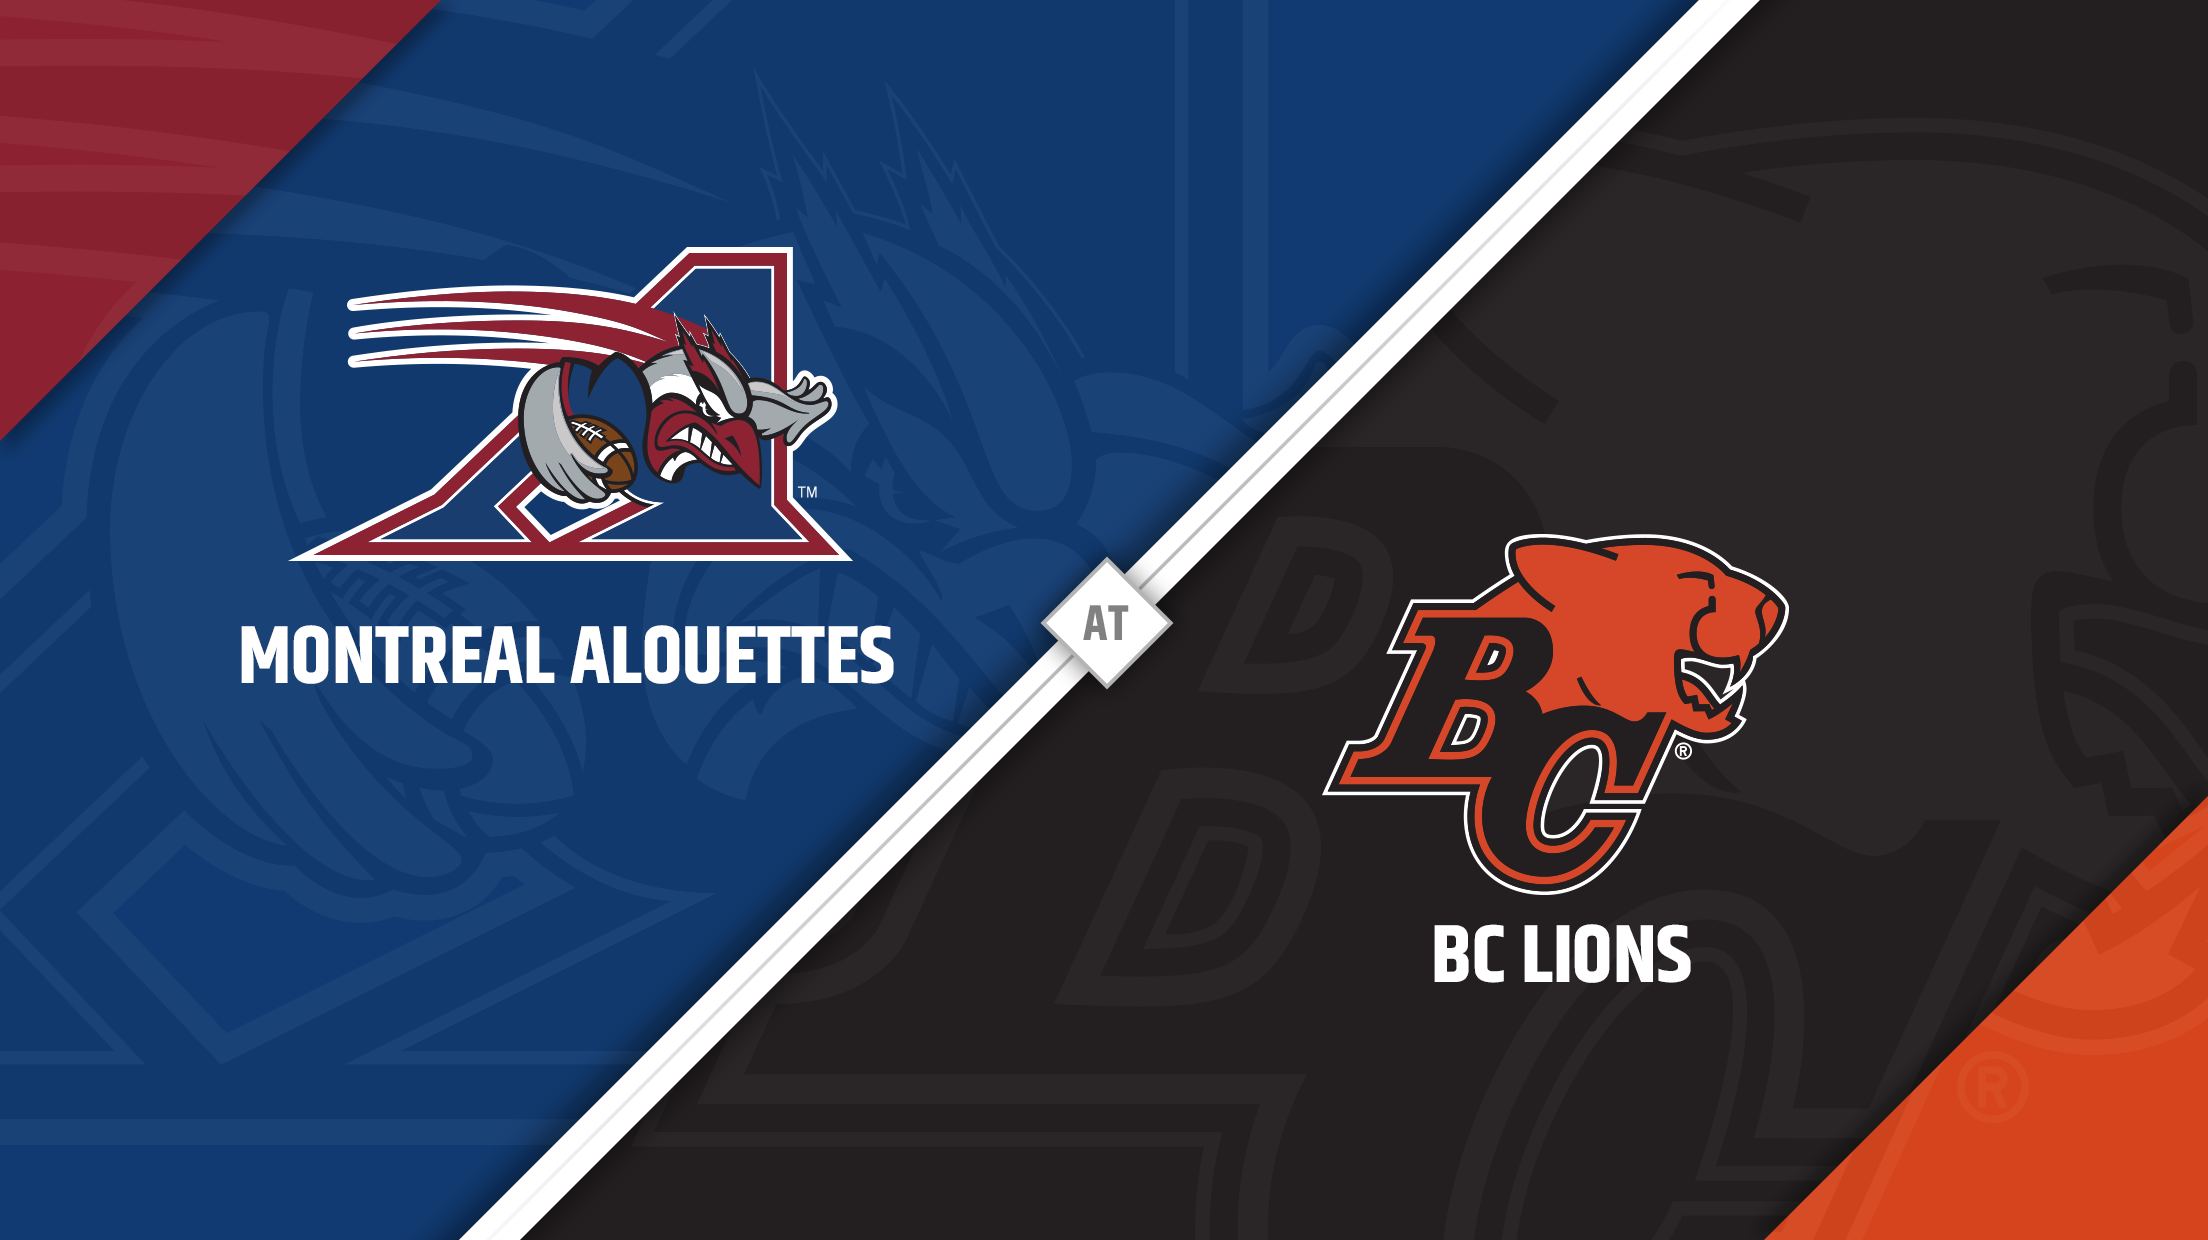 12b_alouettes.png